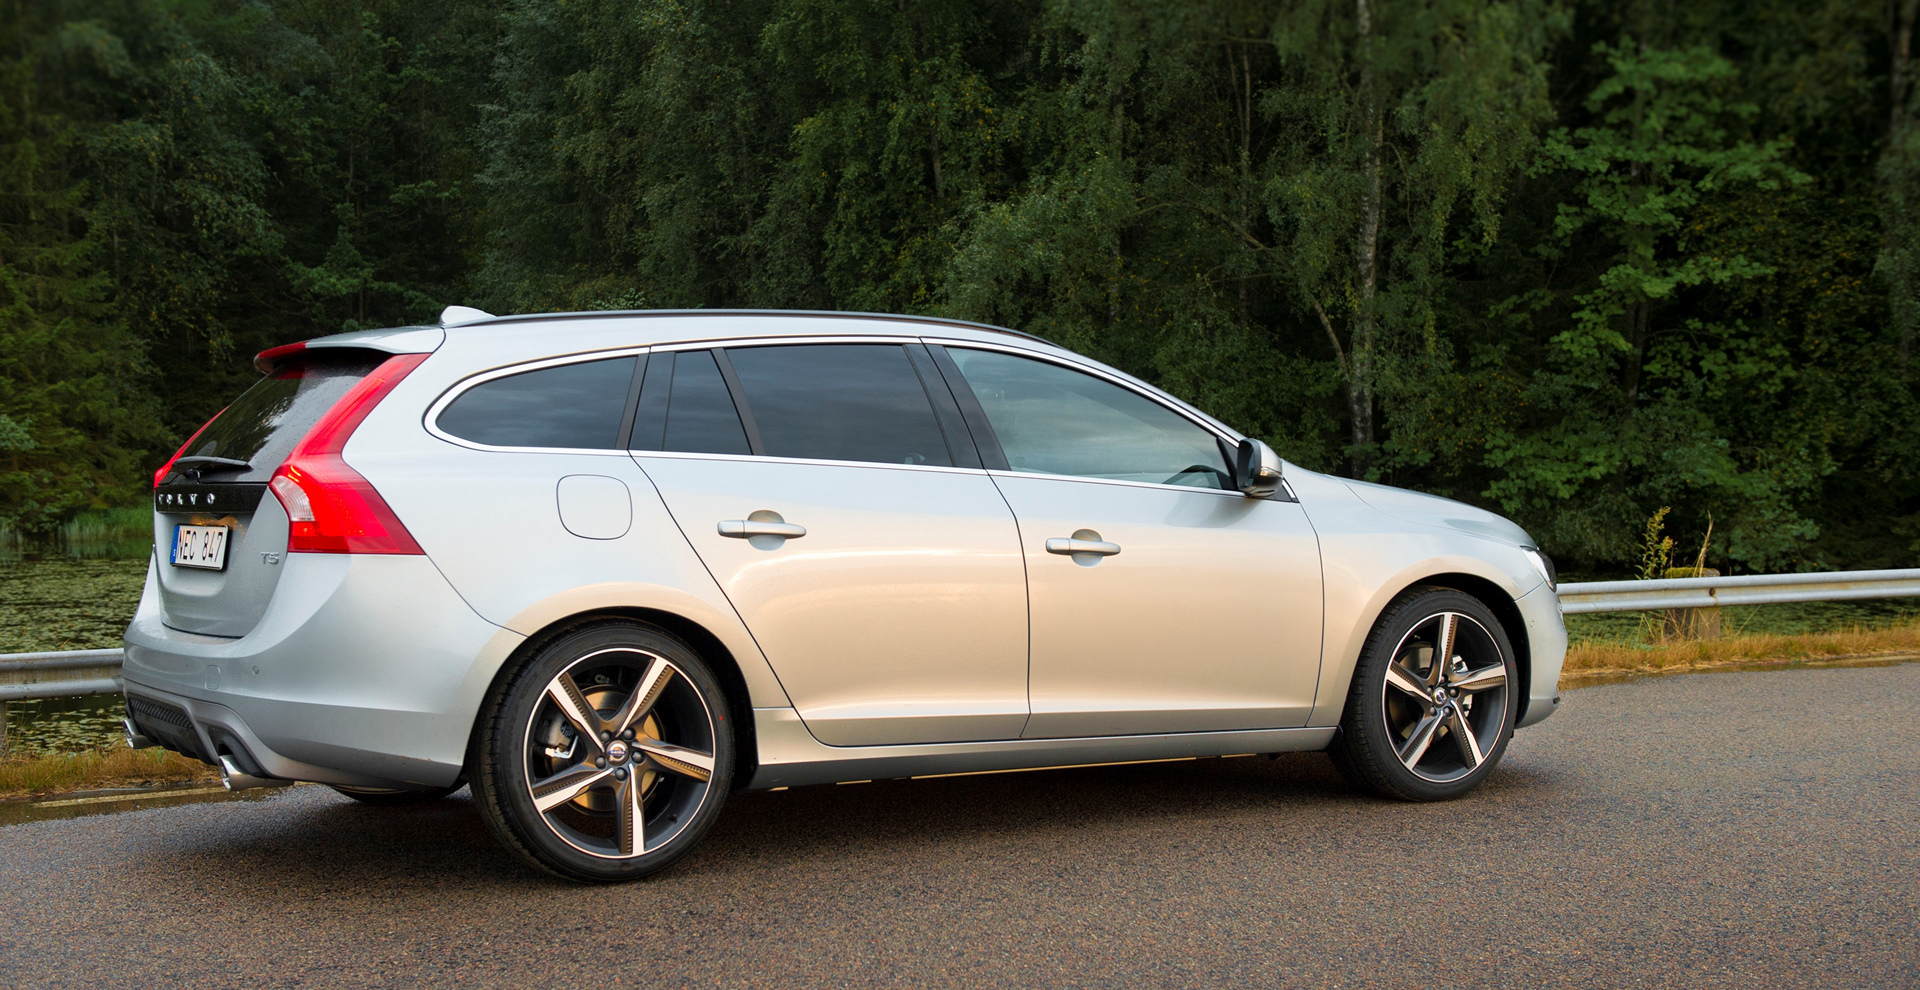 2016 Volvo V60 © Zhejiang Geely Holding Group Co., Ltd